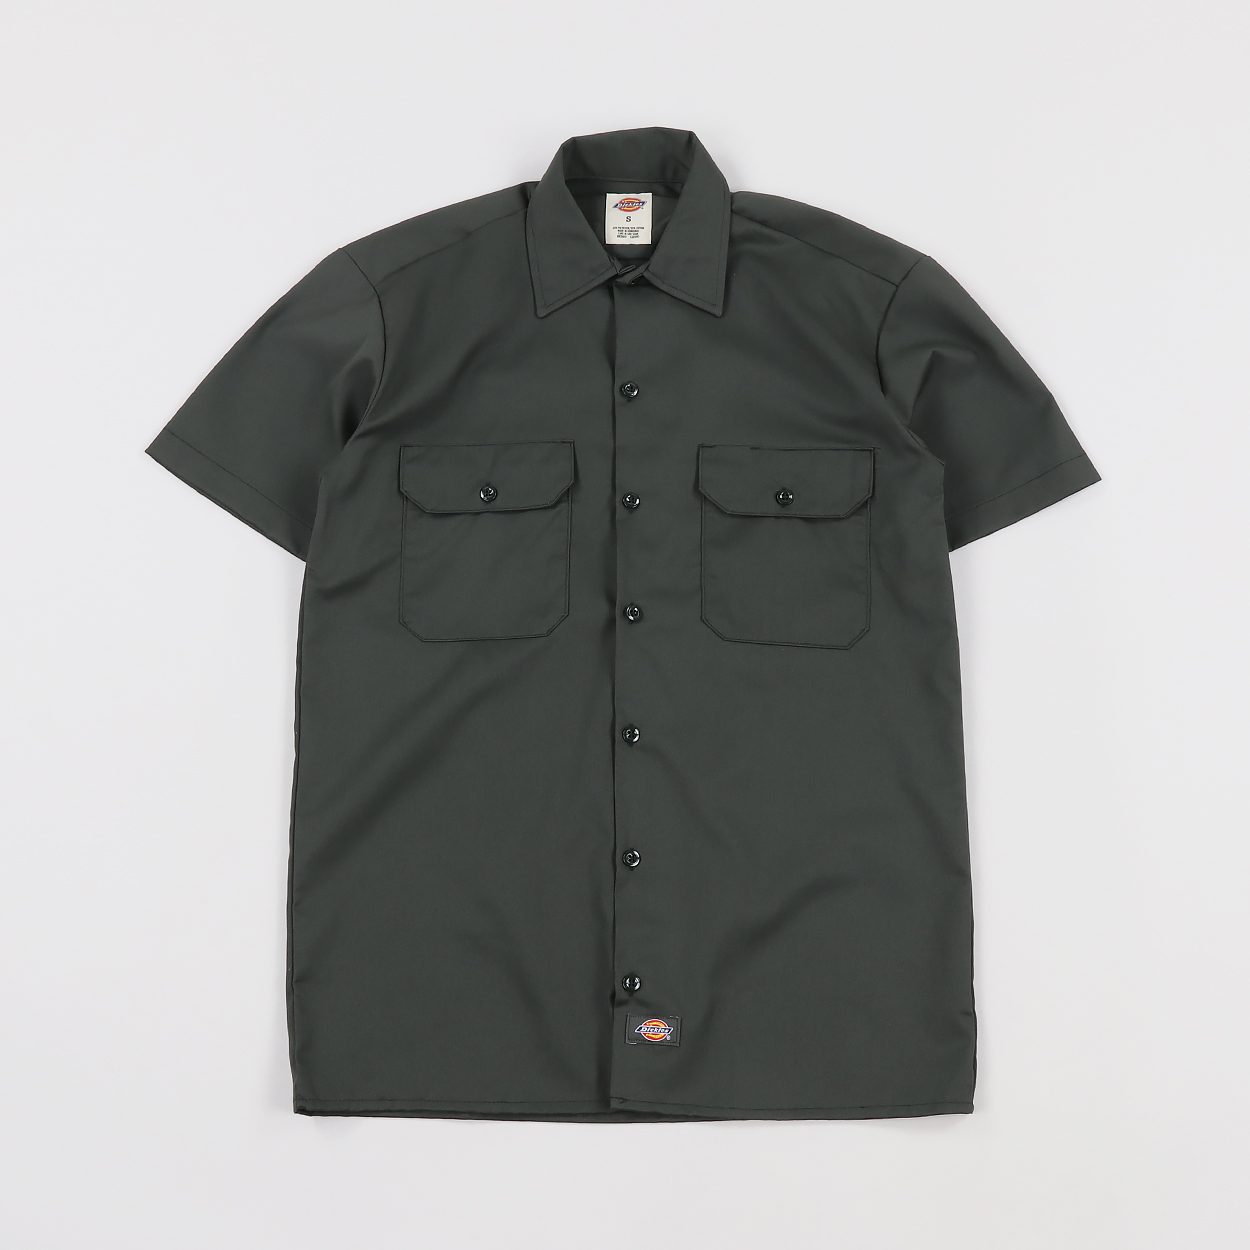 a69112a3642 Dickies Life Workwear Mens Short Sleeve Work Shirt Olive Green £23.00